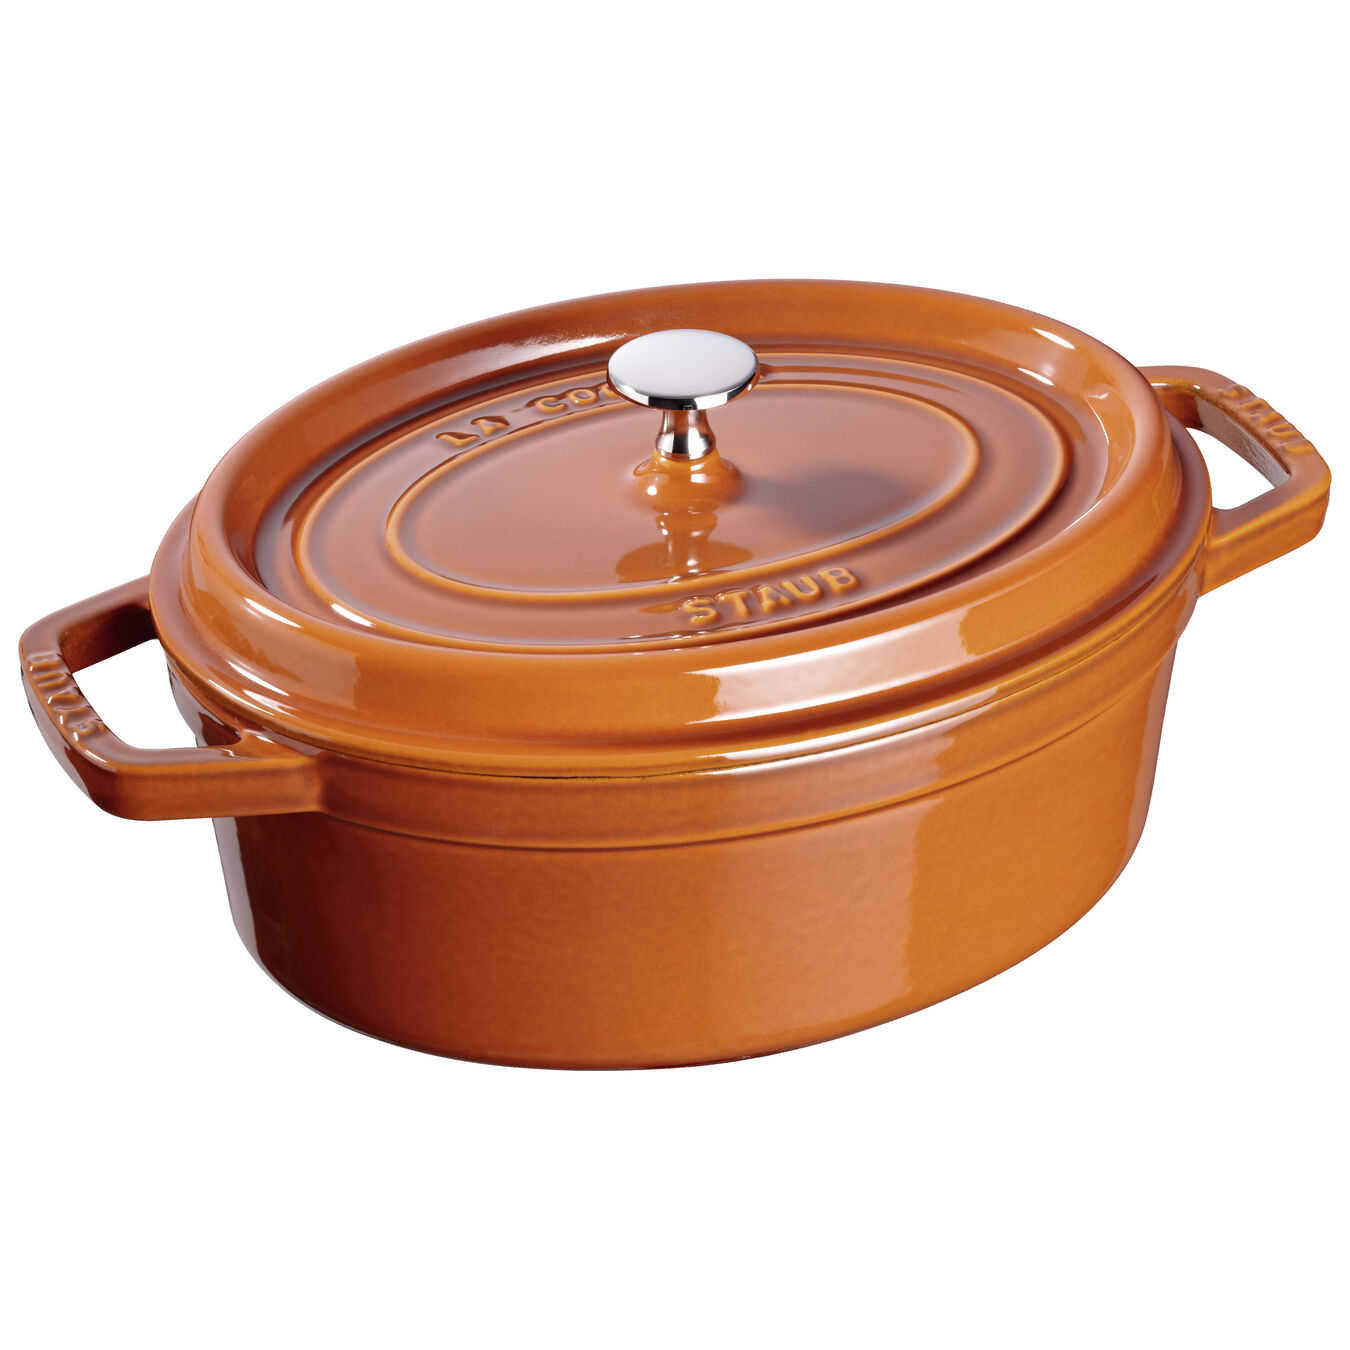 5,5 l Cast iron oval Faitout, Cinnamon,,large 1